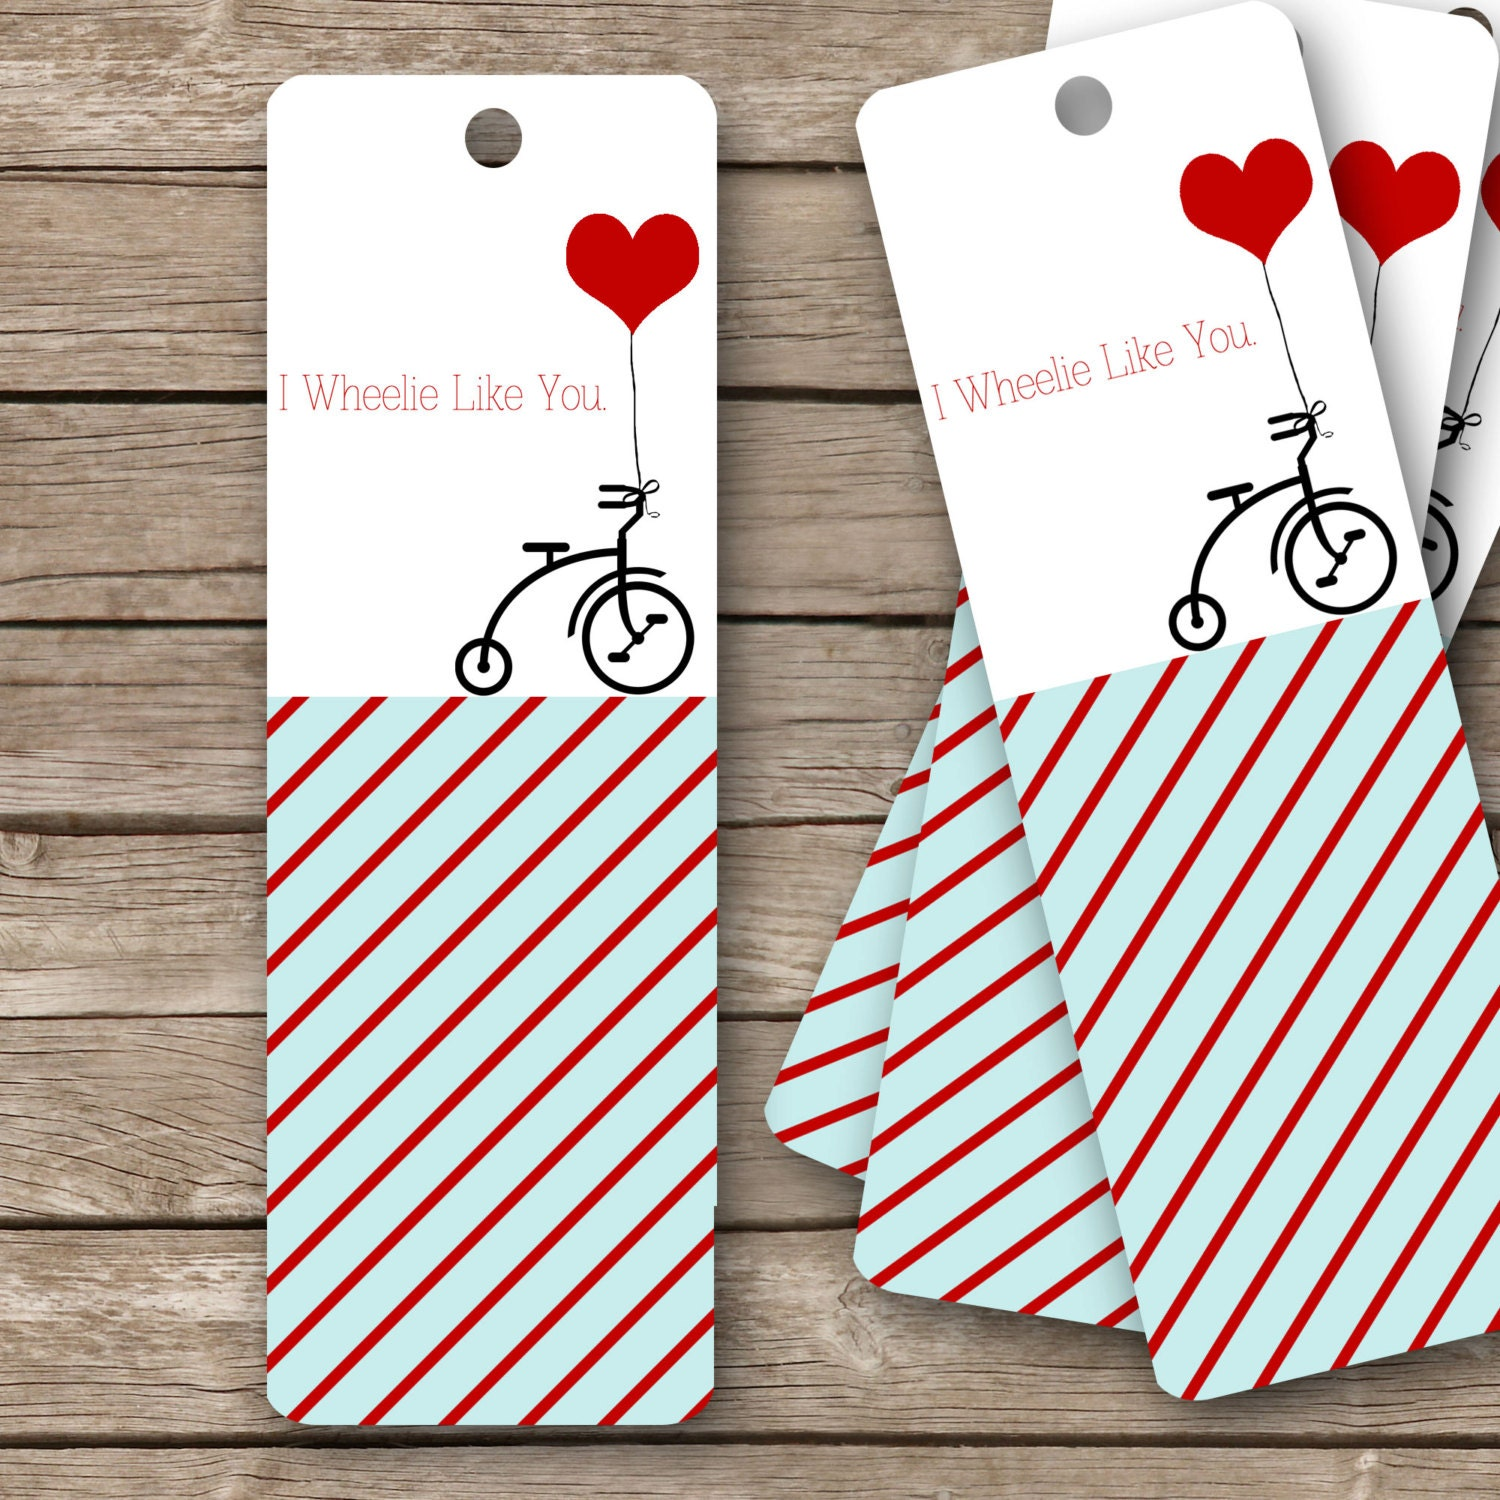 It's just a picture of Comprehensive Printable Valentine Bookmarks